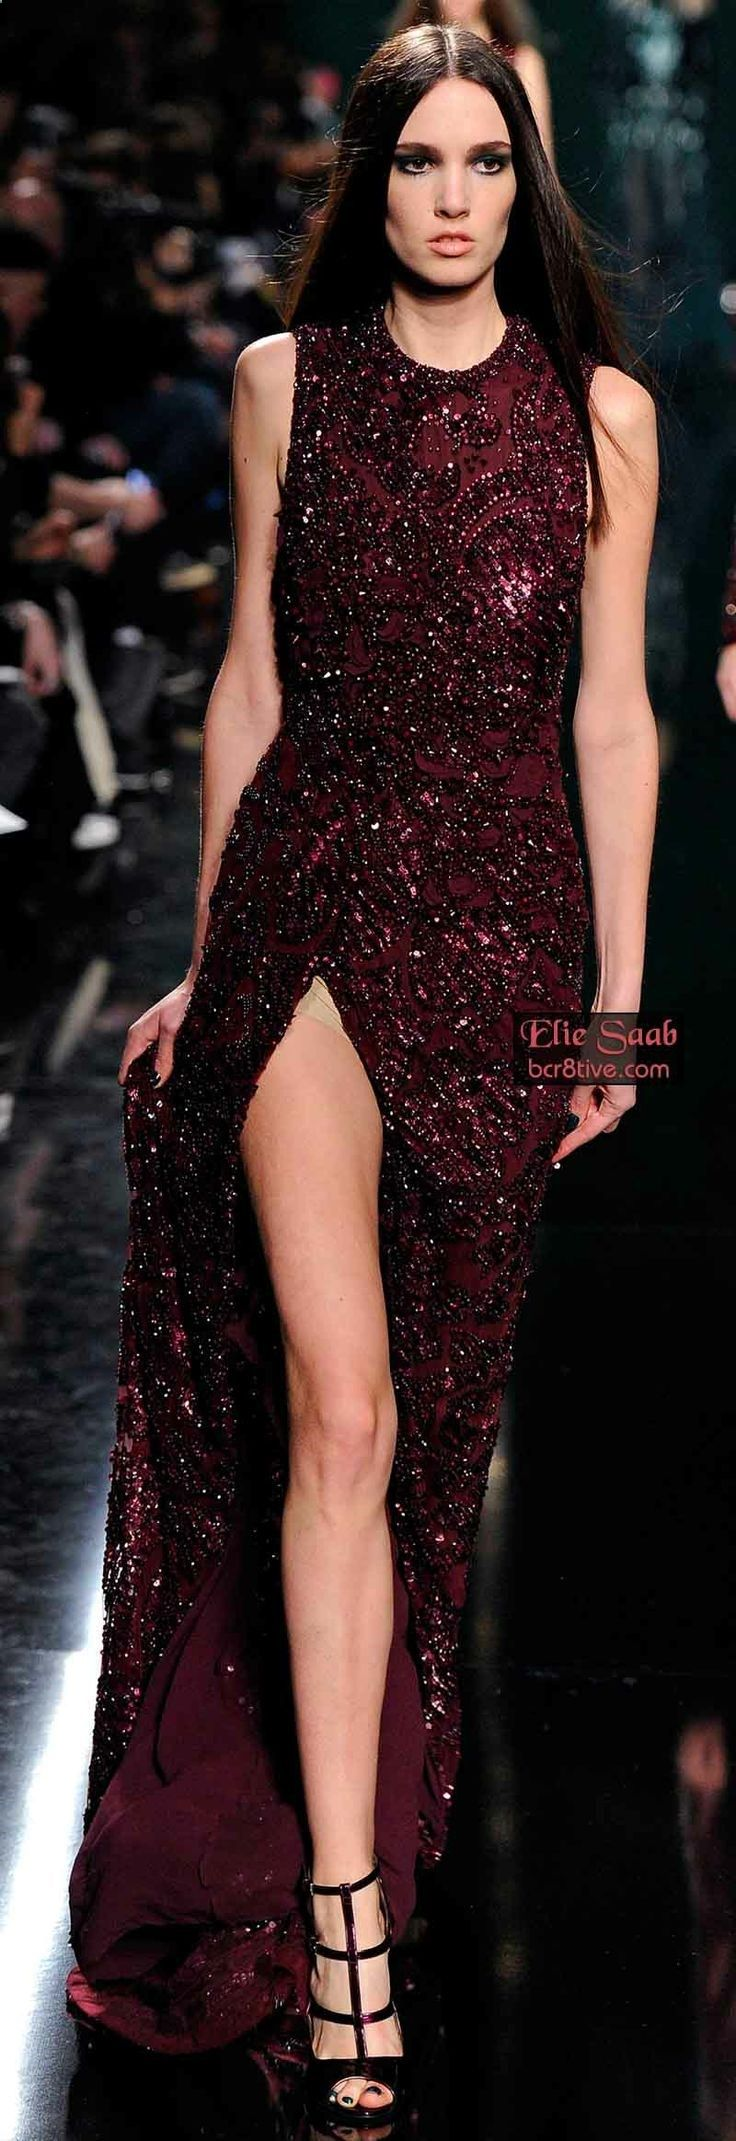 Elie saab fall rtw perfect night dress pinterest elie